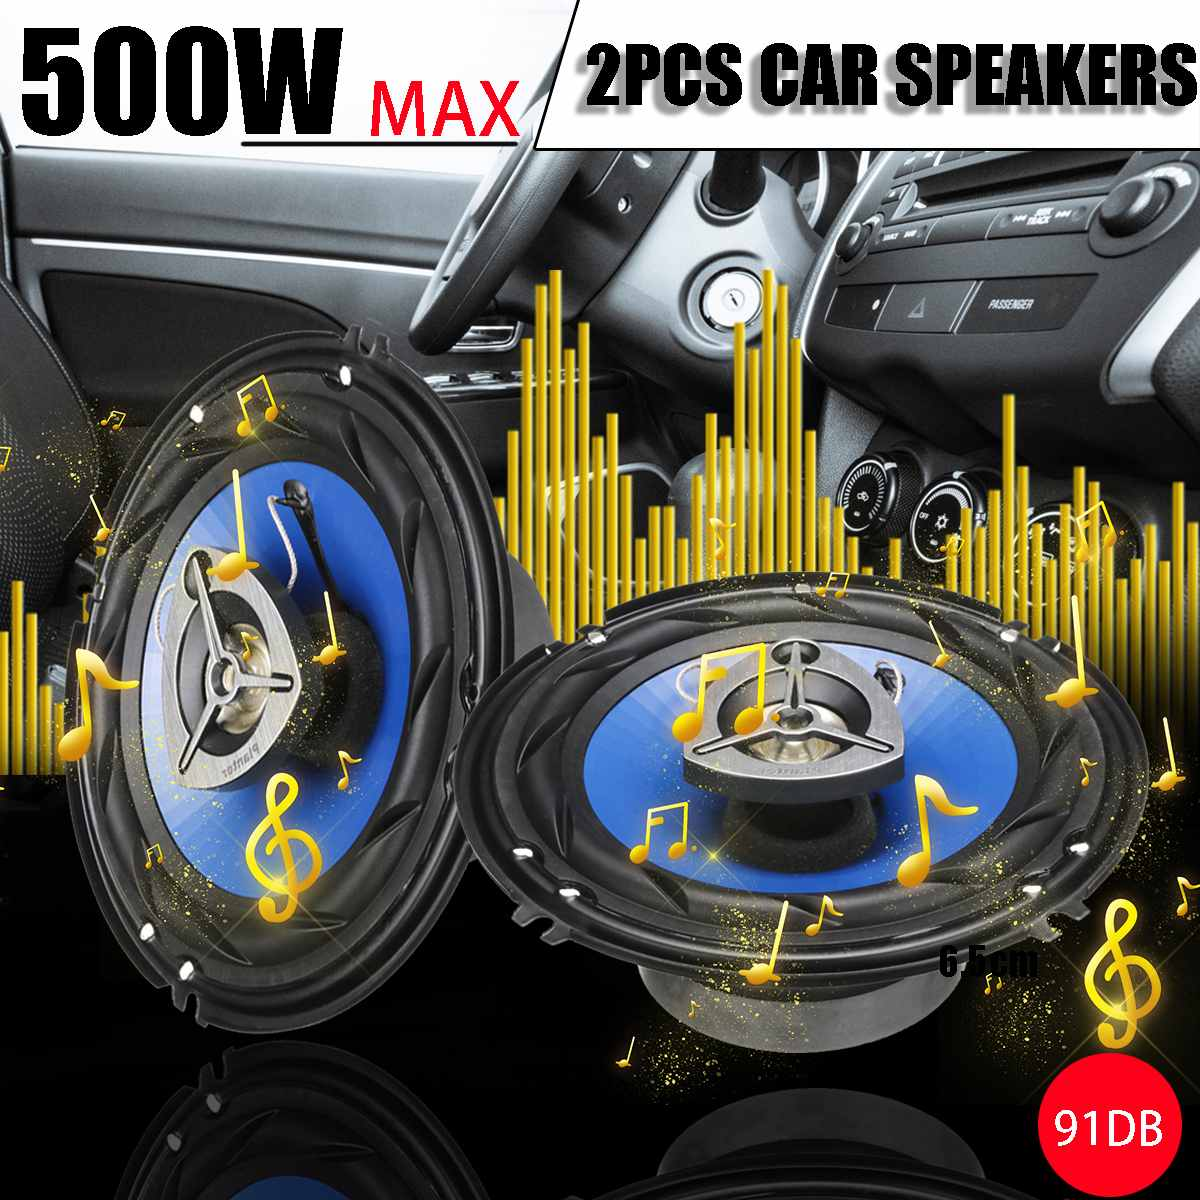 2pcs Car Speakers 6.5inch 500W Car Subwoofer 91DB Coaxial Speaker Car Rear /Front Door Vehicle Stereo Loudspeaker Music Player